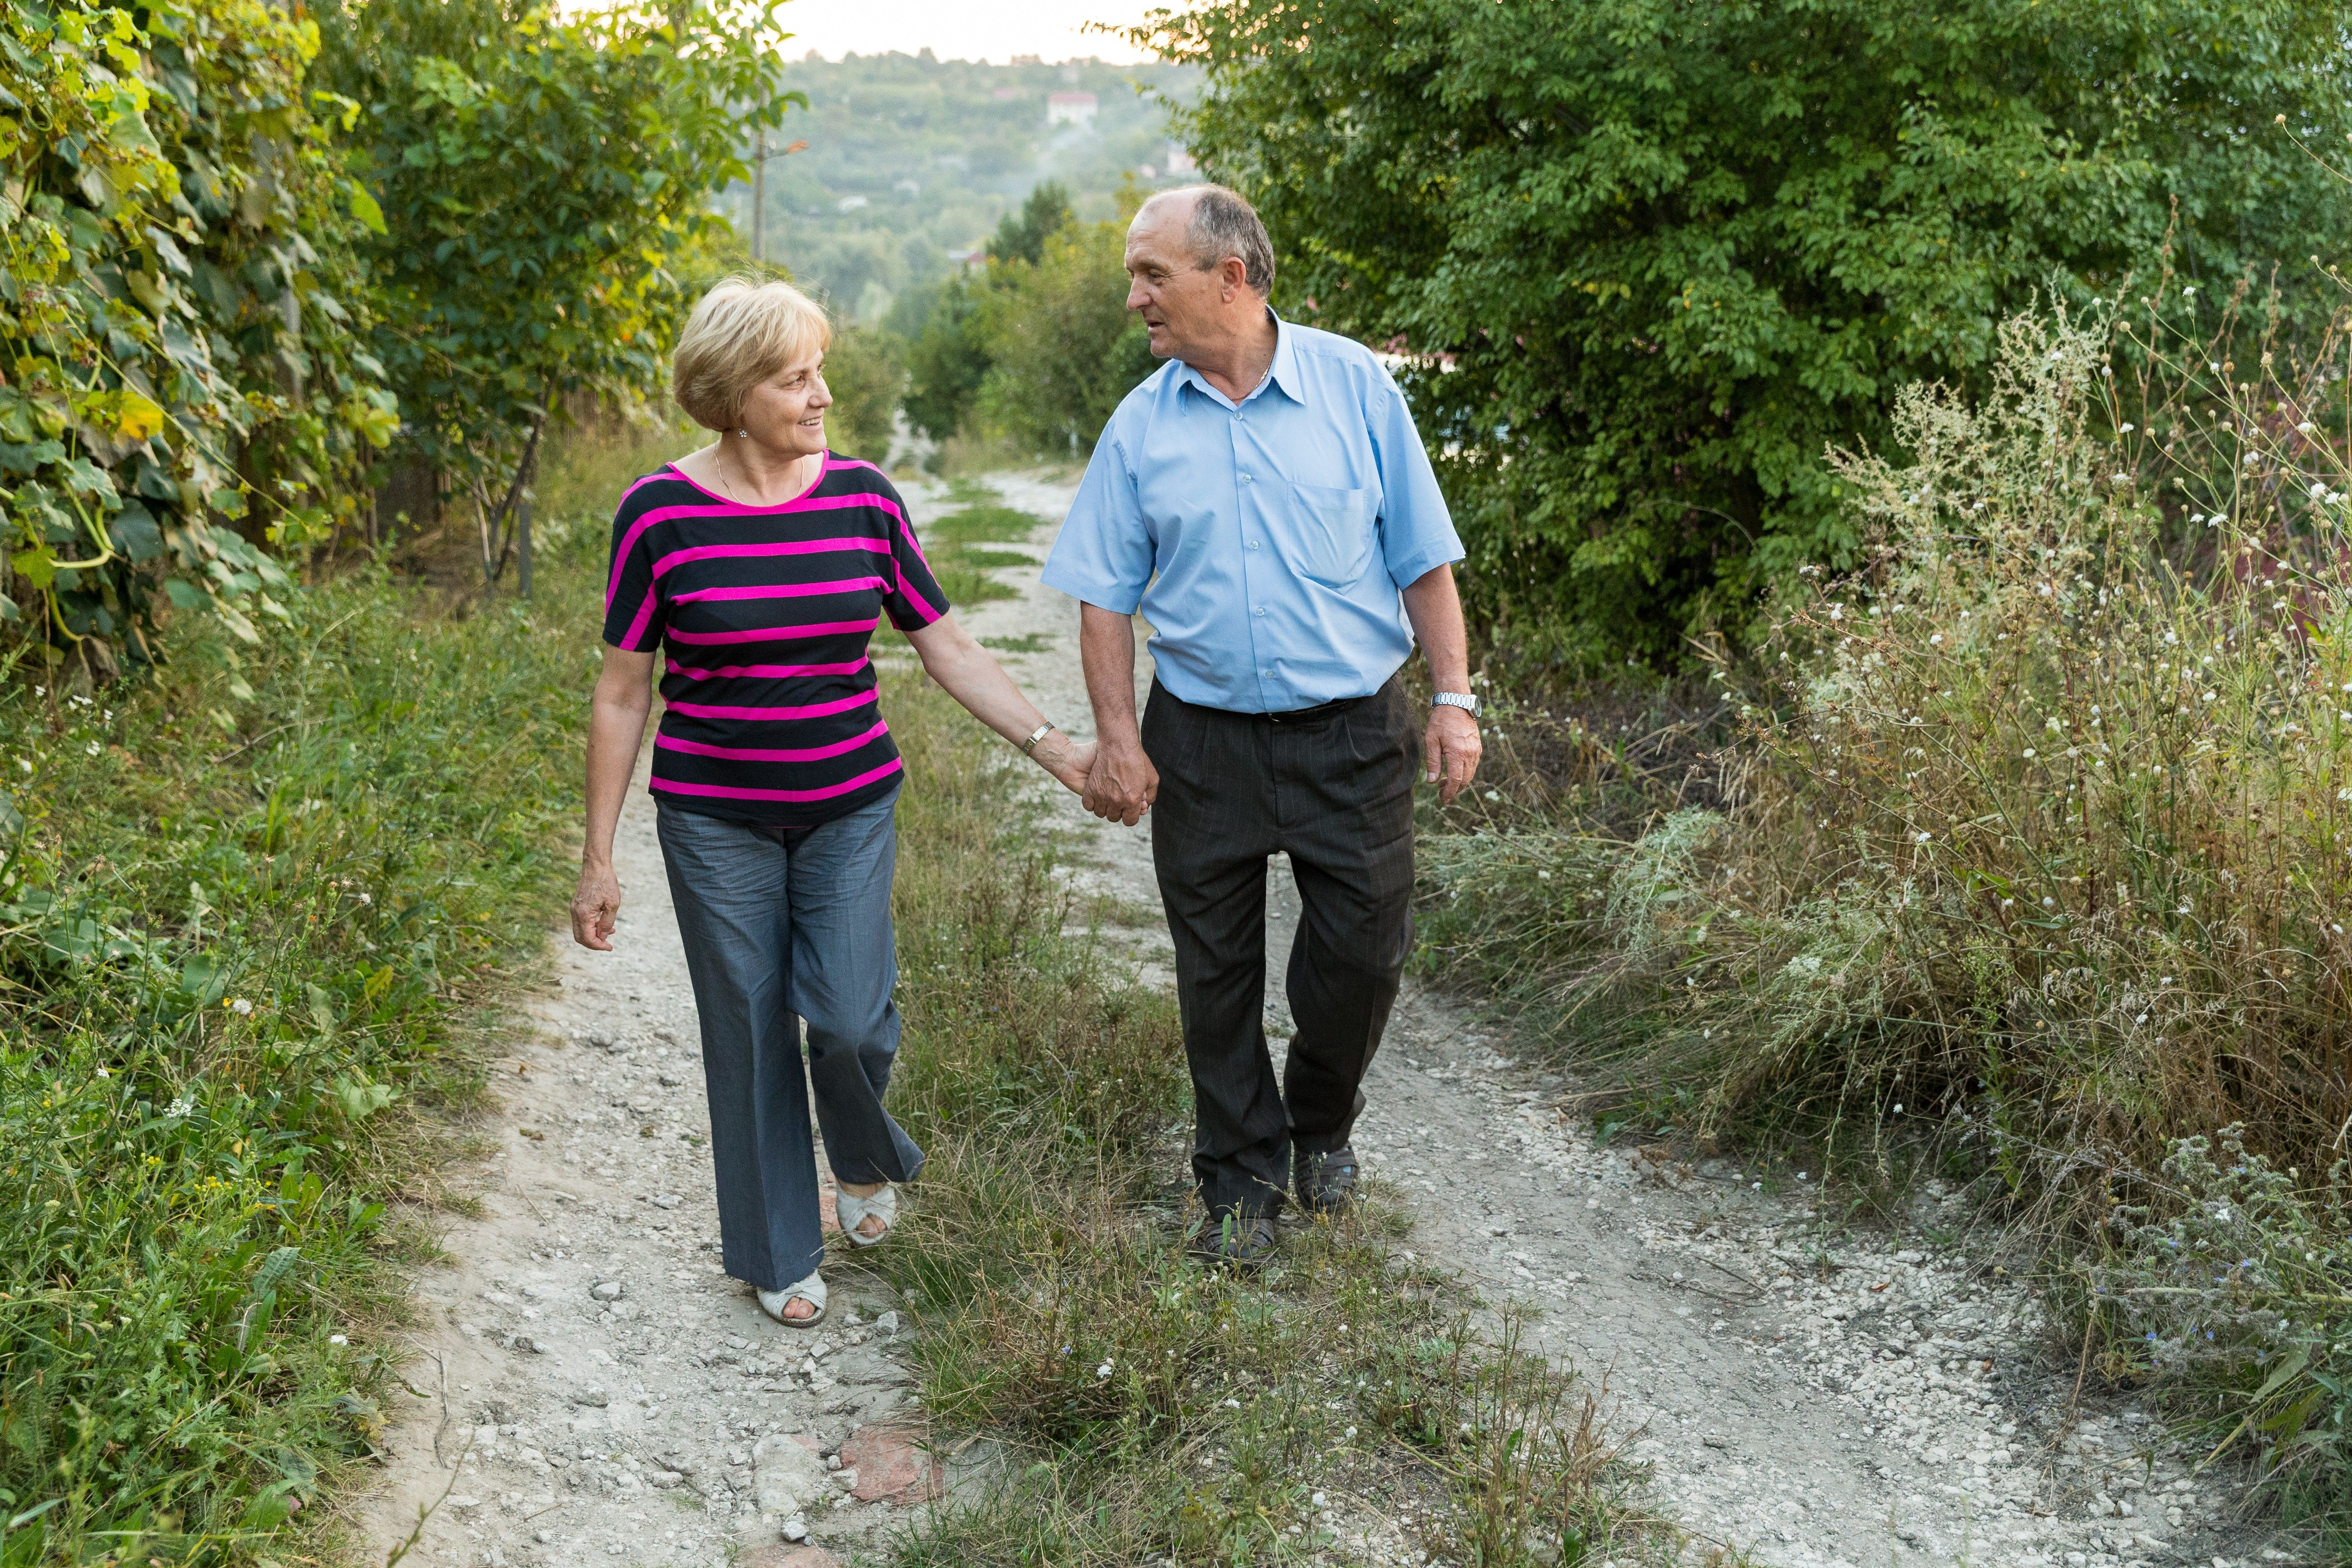 An elderly couple from Moldova holding hands and walking on a road together.